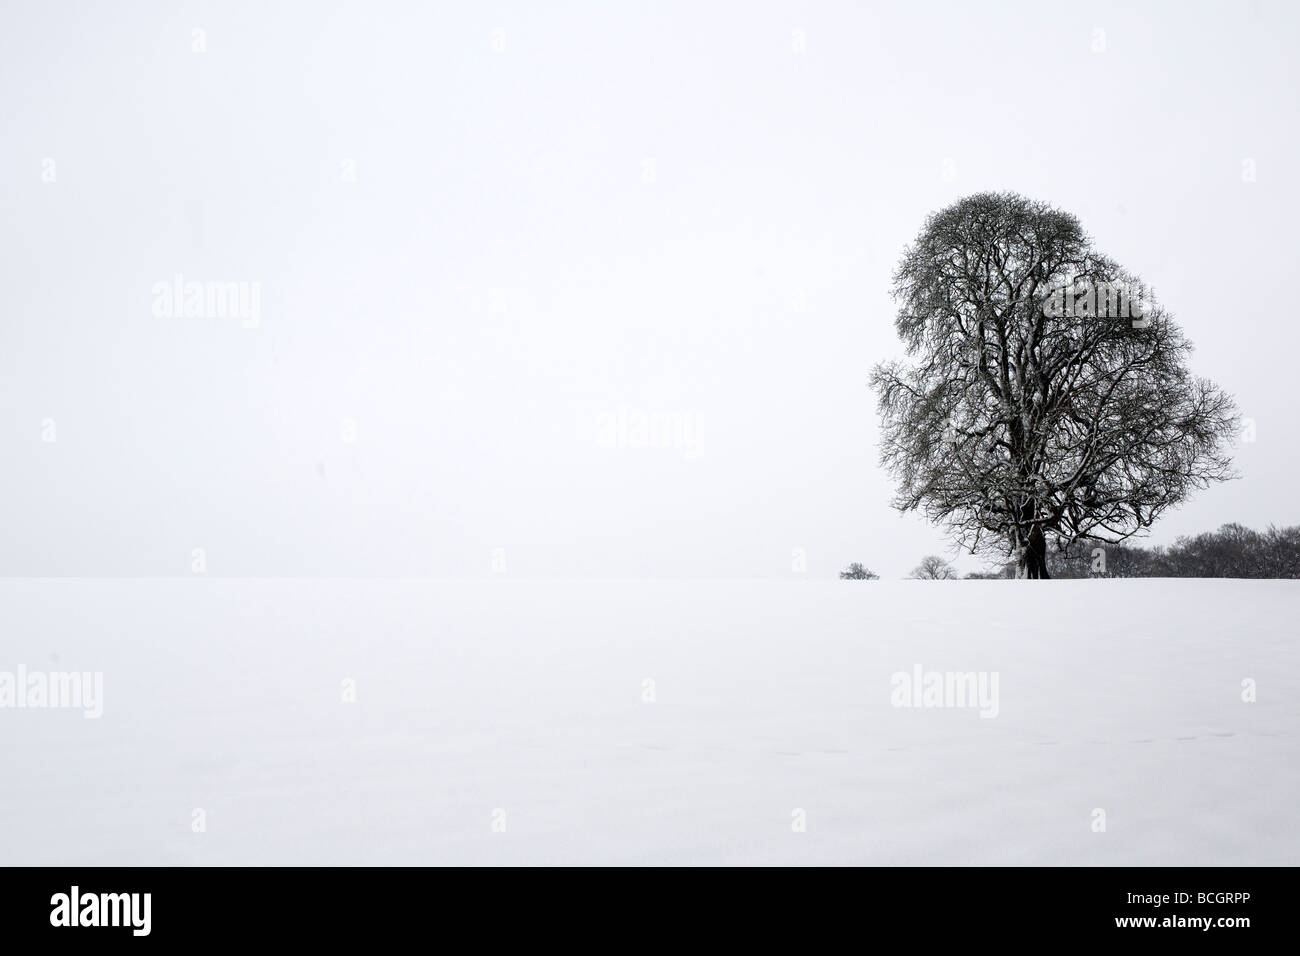 tree in snow covered landscape - Stock Image